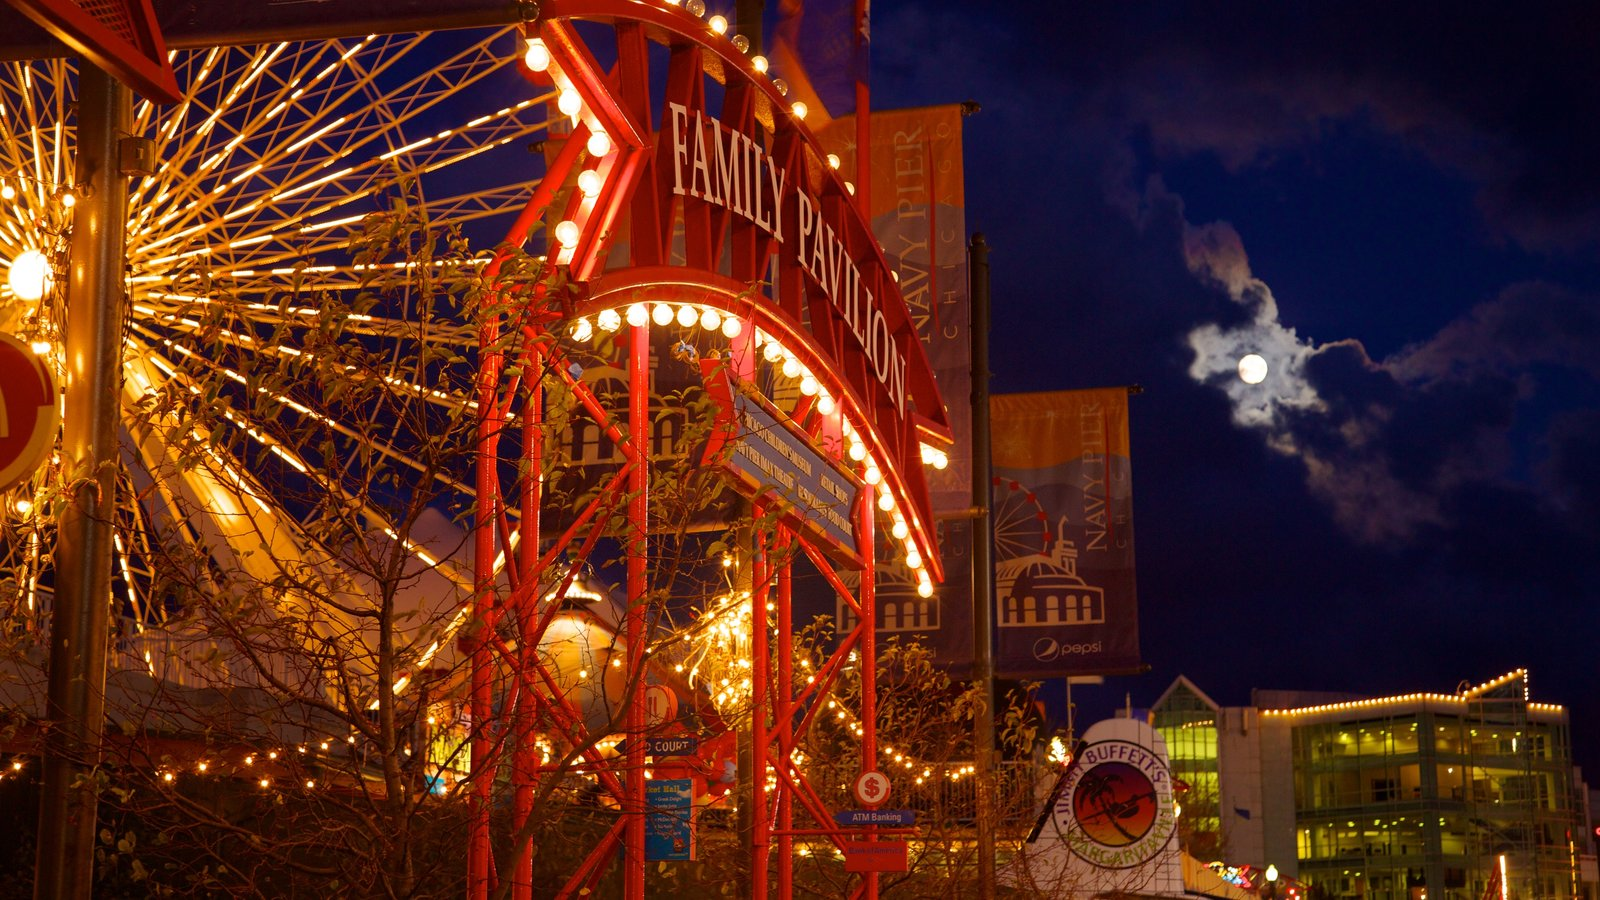 Navy Pier featuring rides, night scenes and signage